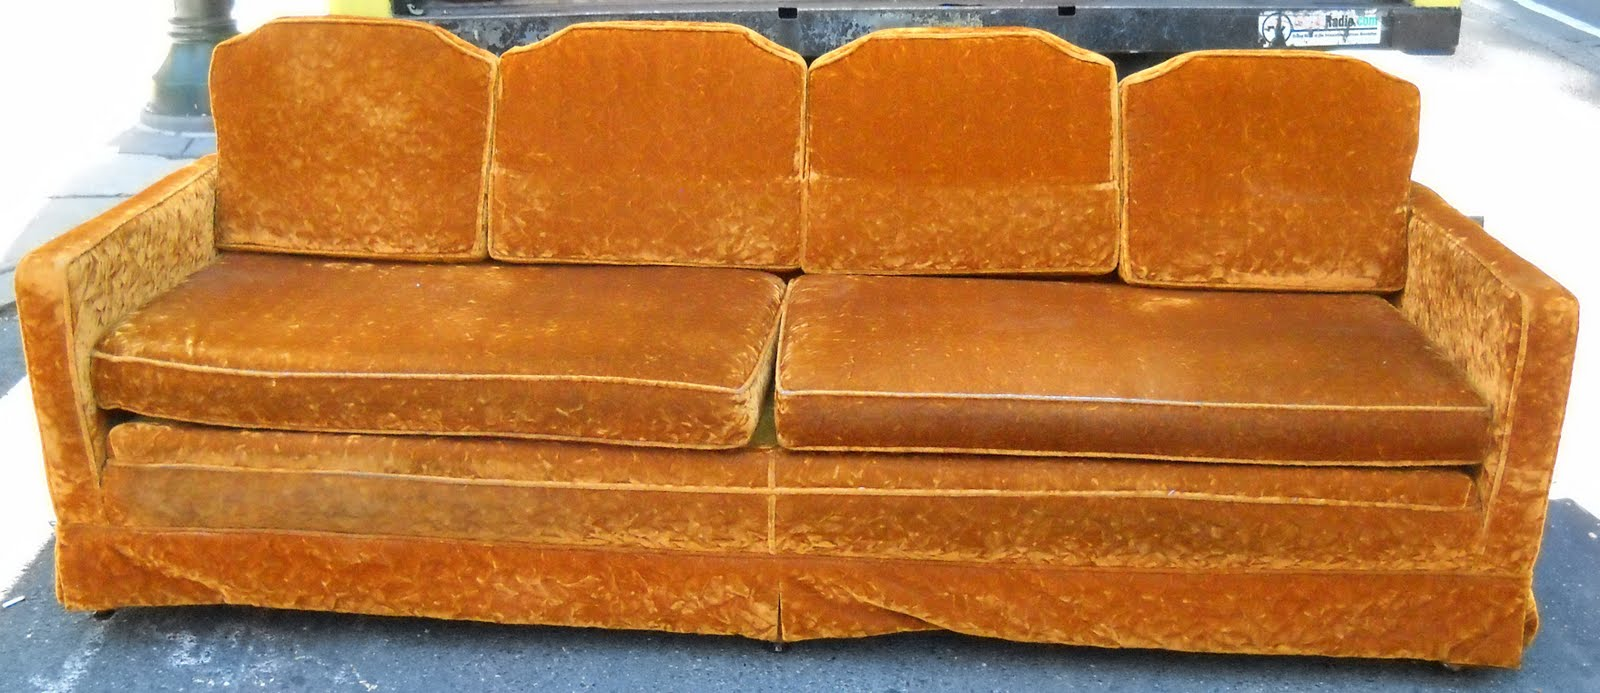 Outstanding Uhuru Furniture Collectibles Retro Burnt Orange Couch Sold Machost Co Dining Chair Design Ideas Machostcouk